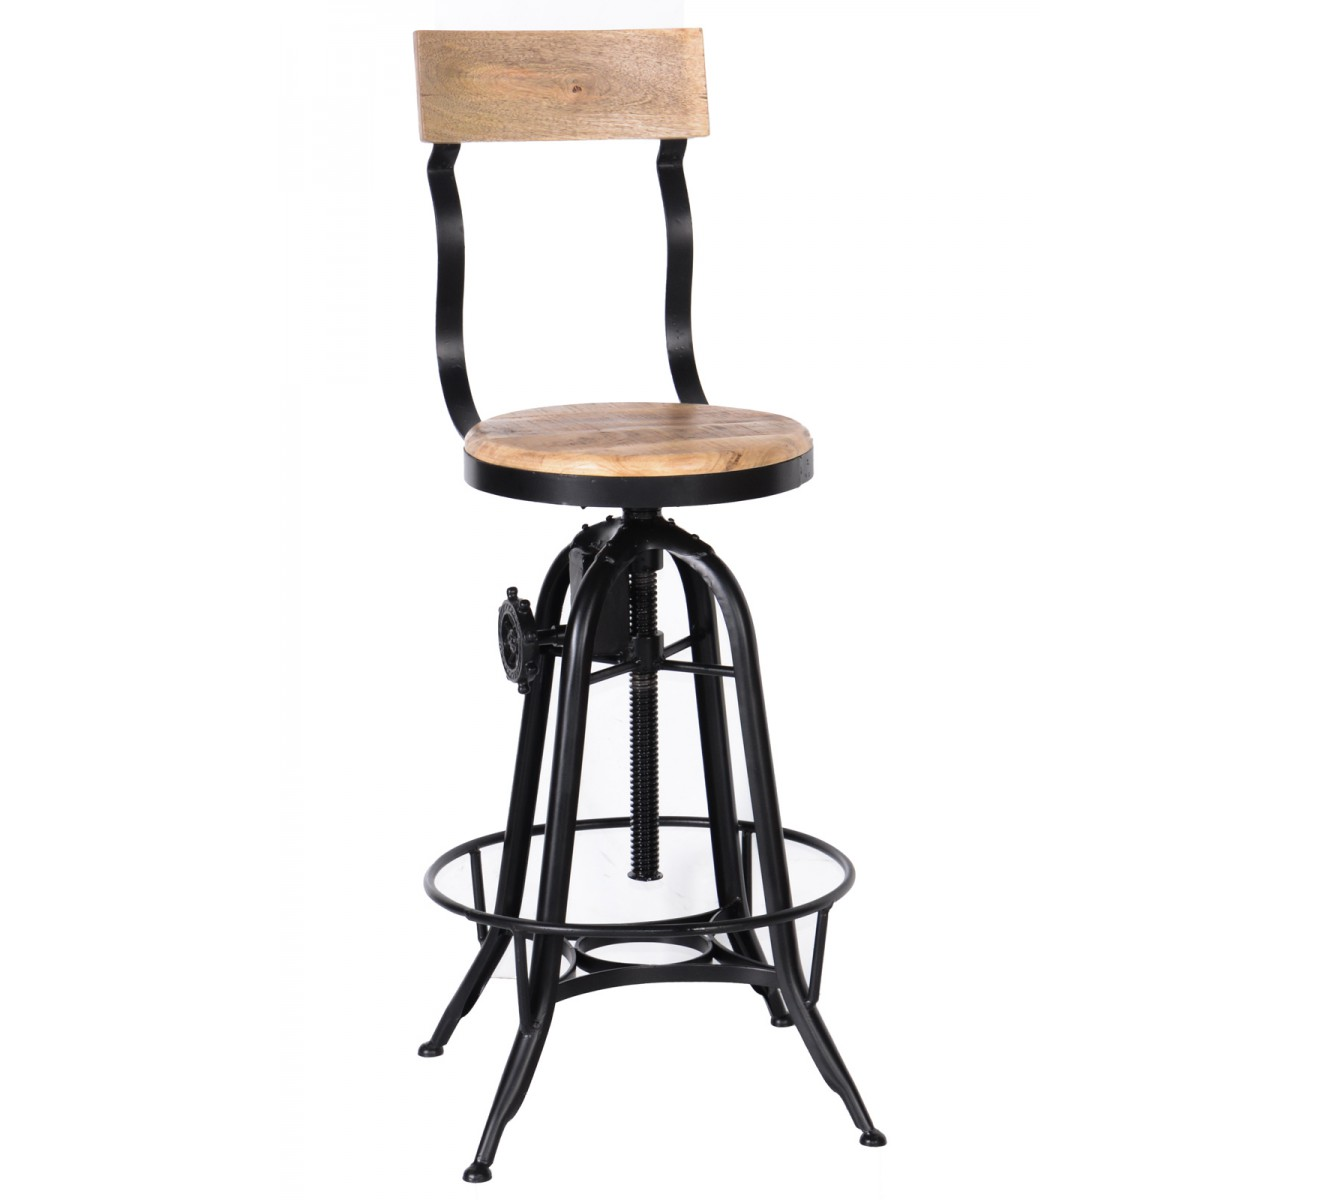 Tabouret de bar à but